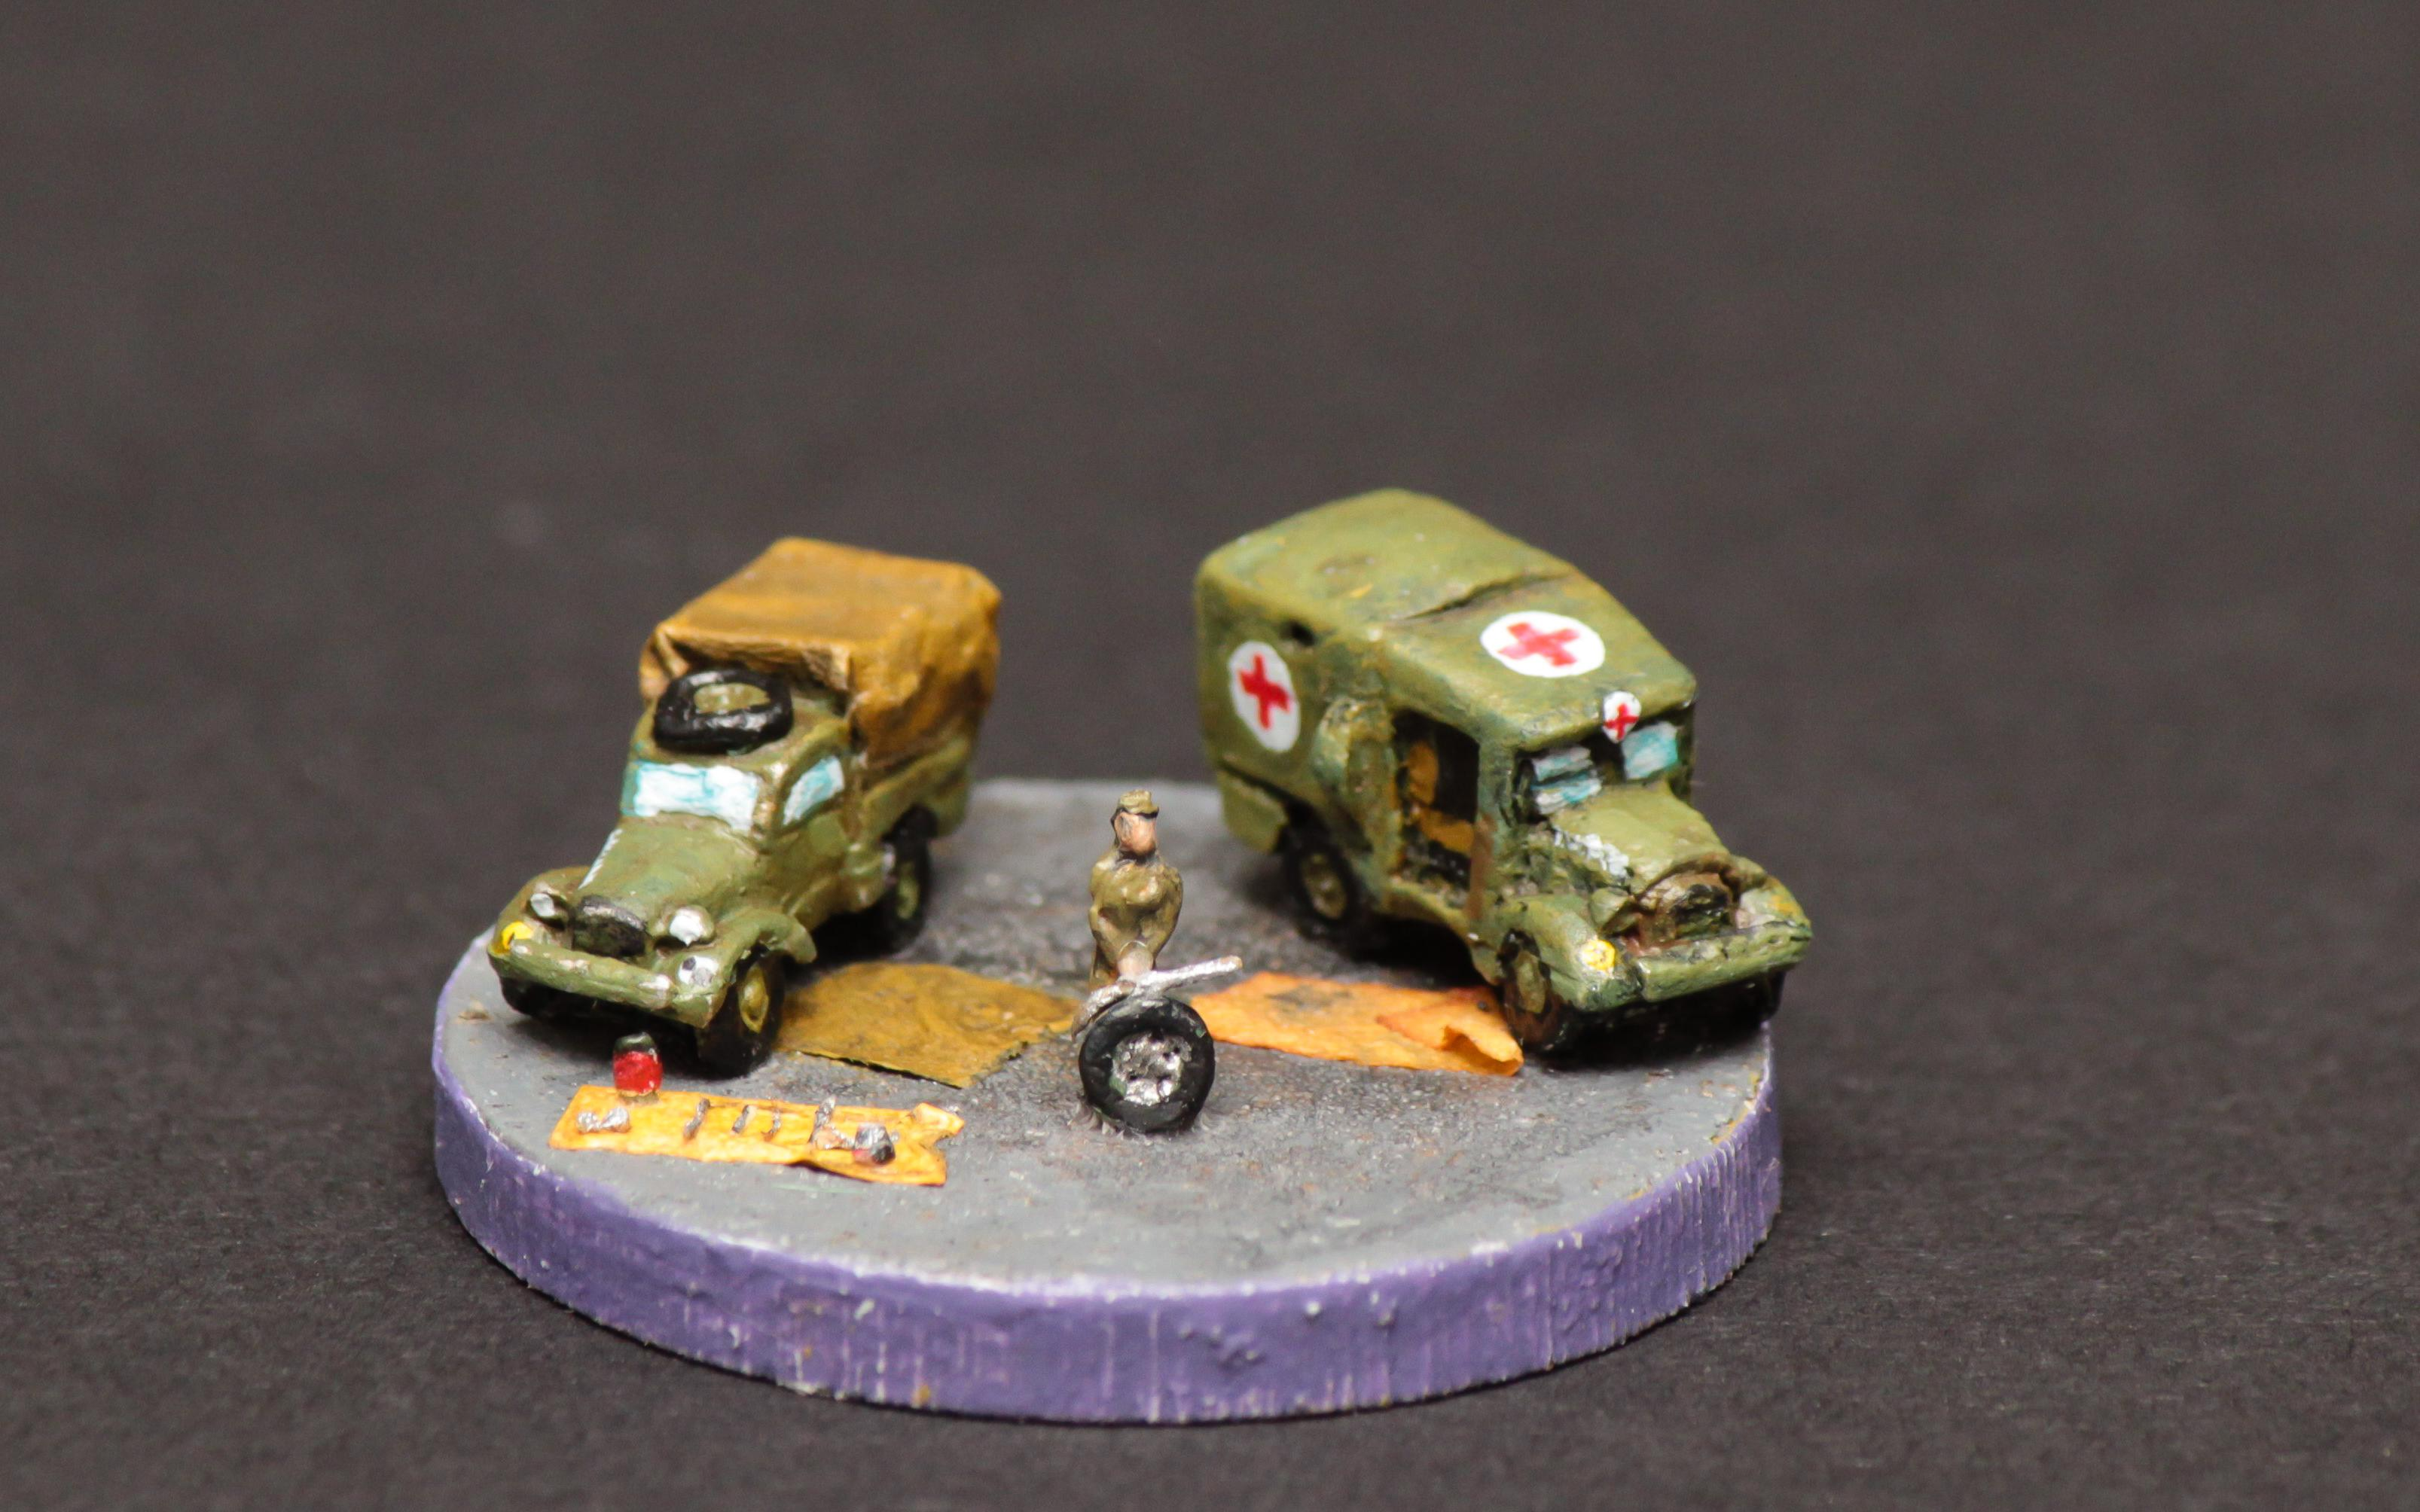 6mm, Ambulance, Ats, Queen, Royal, World War 2